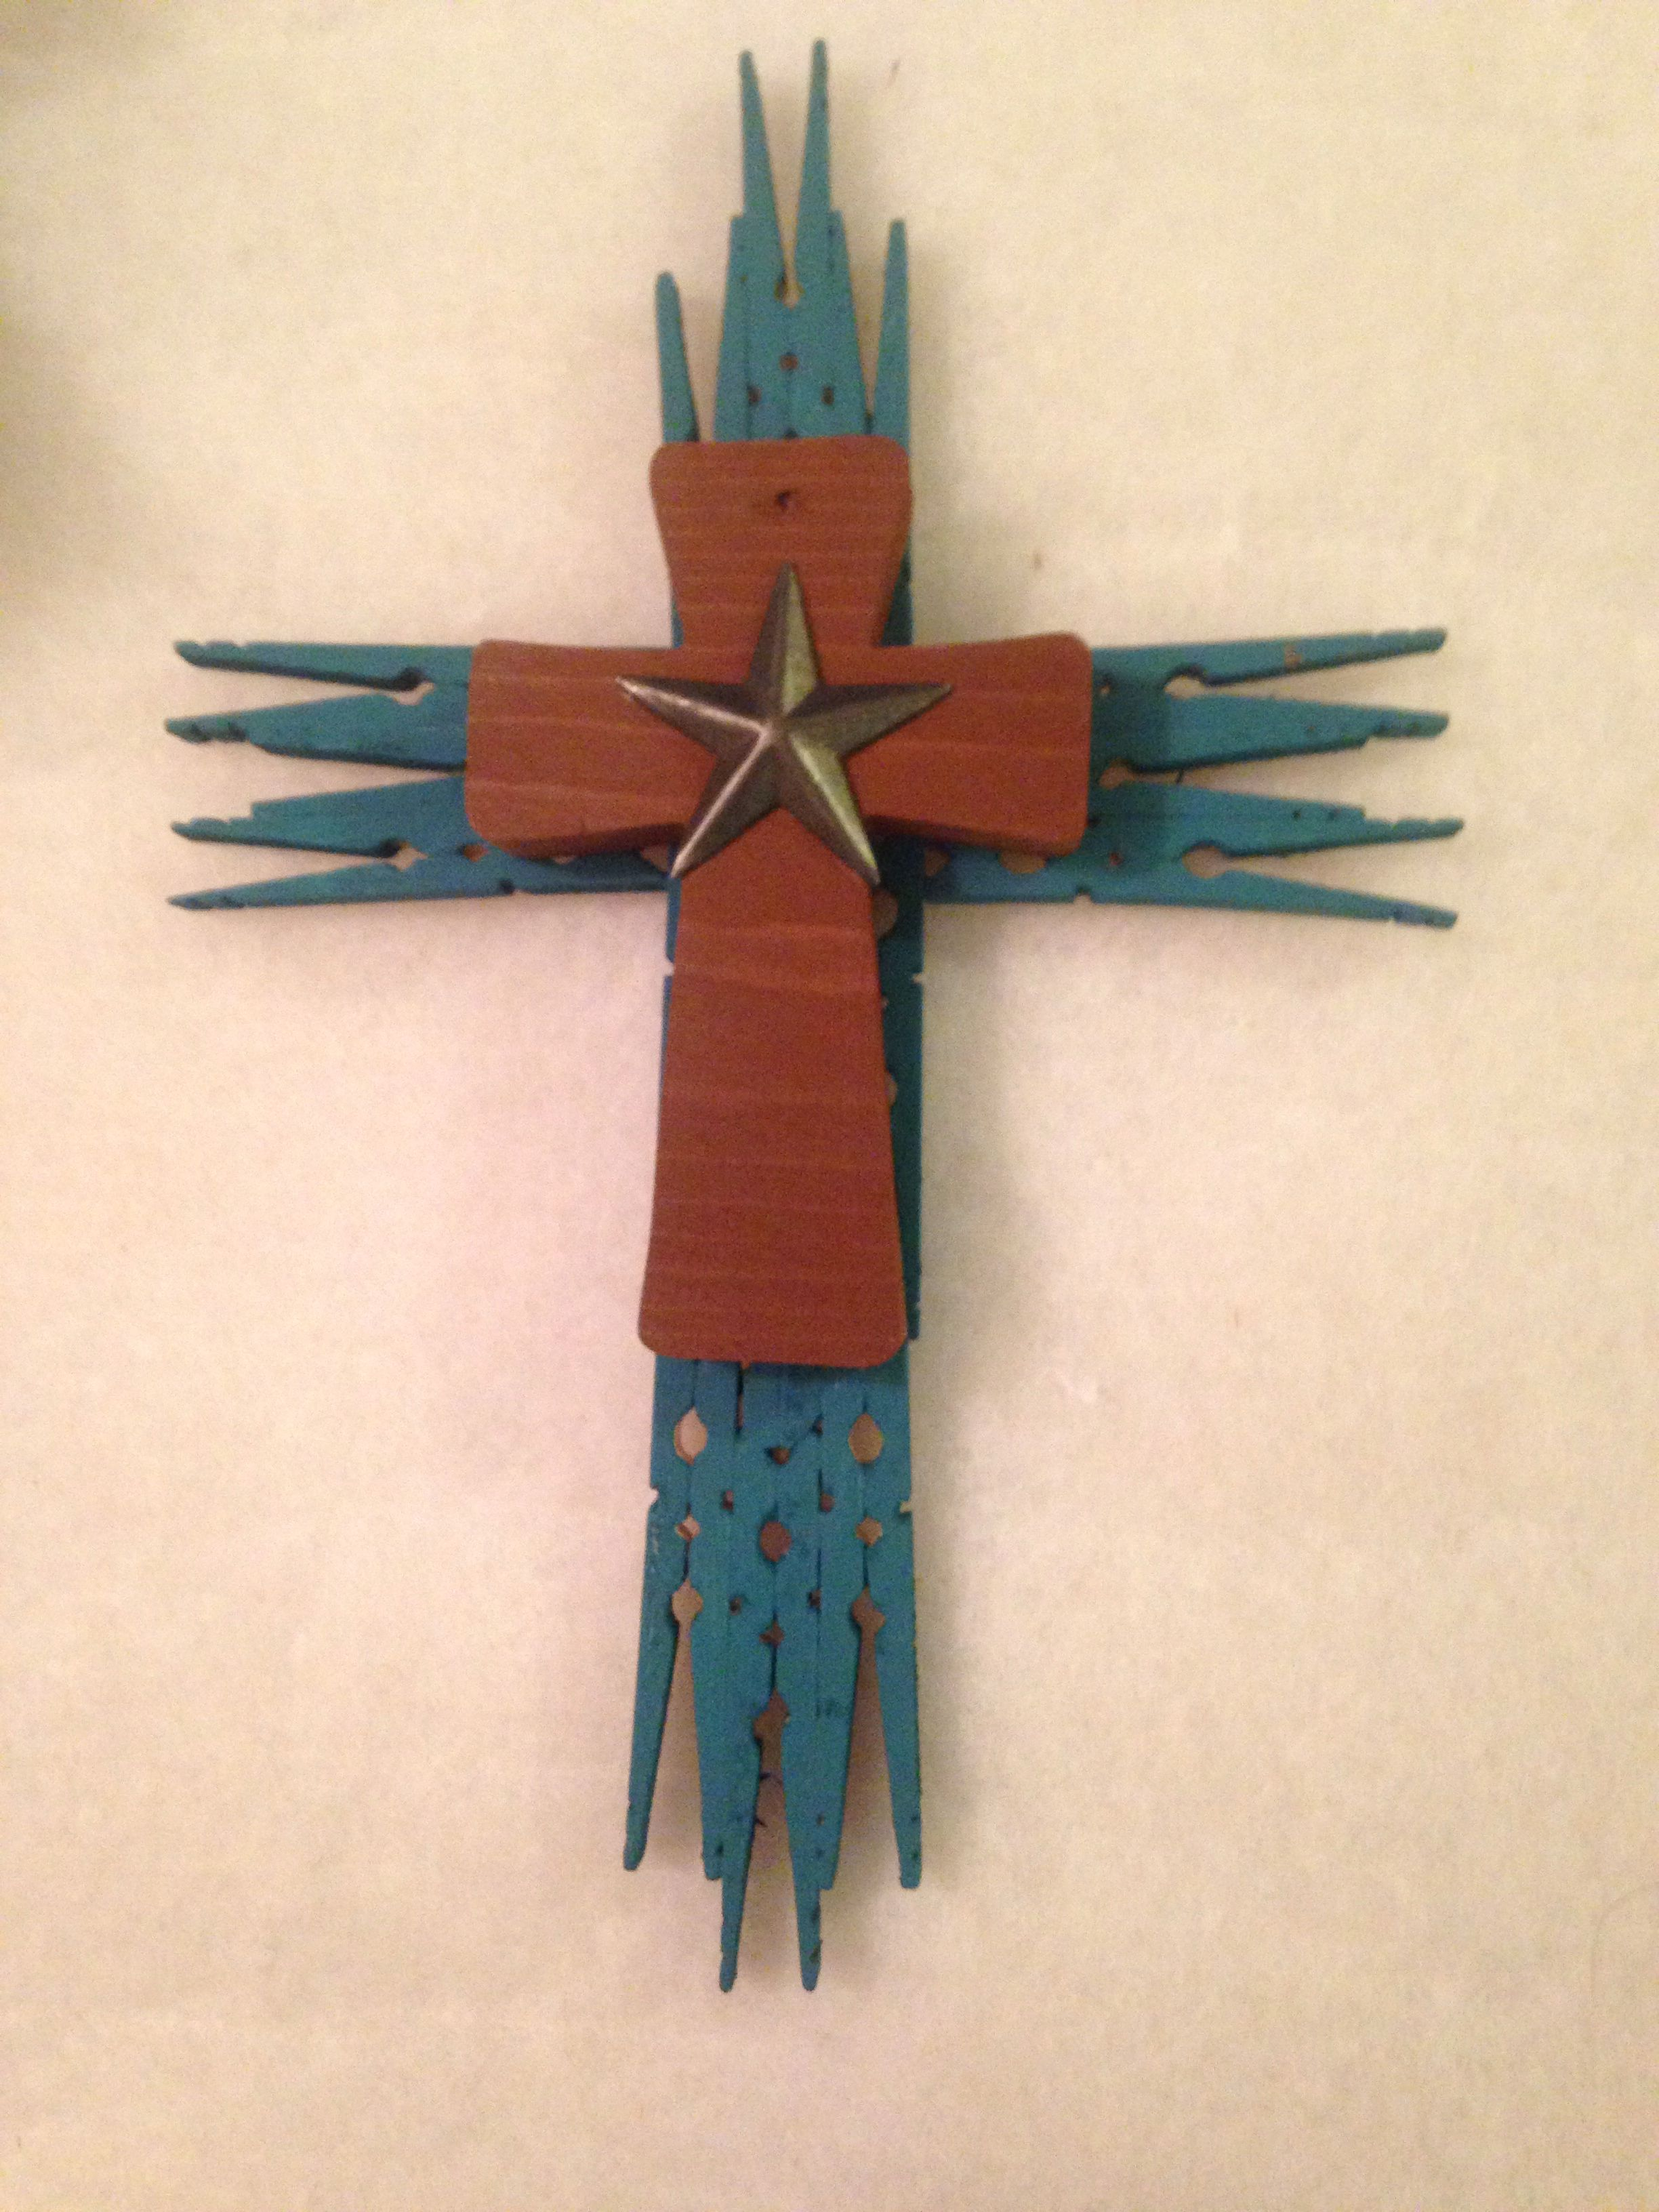 Handmade Upcycled Clothes Pin Cross Stacked Wood Cross With Western